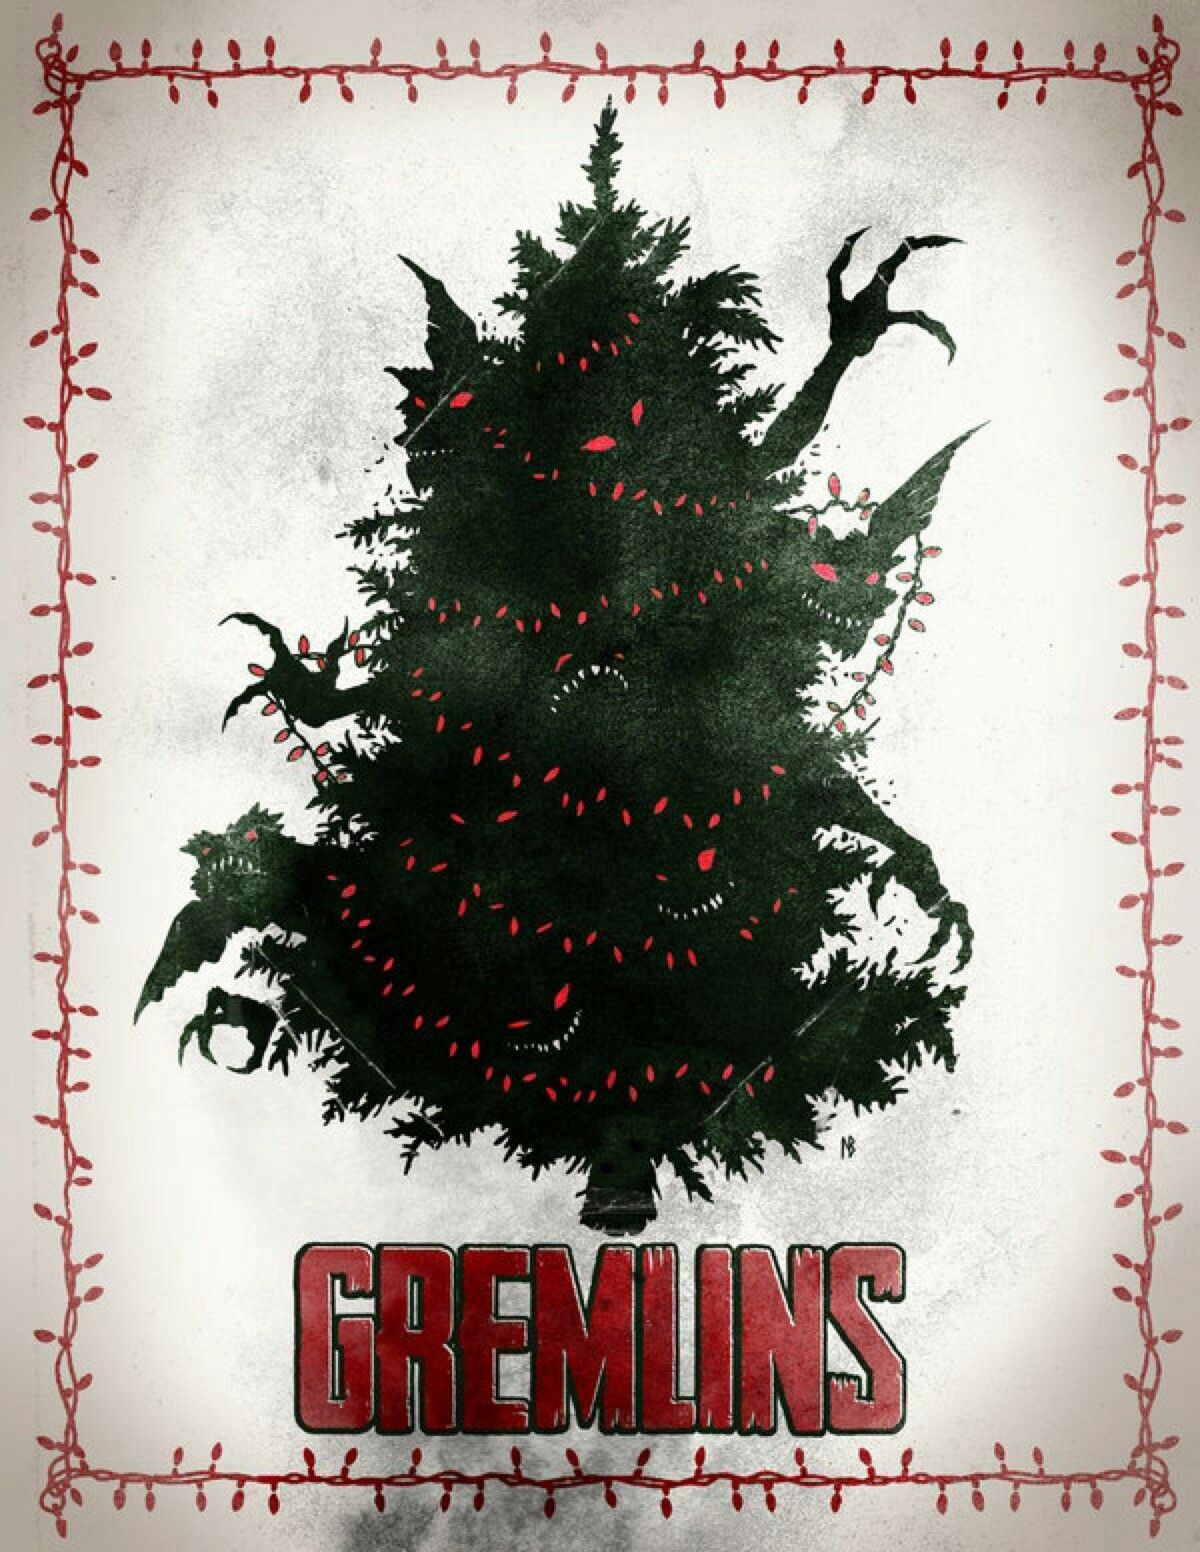 Gremlins Gremlins, Christmas horror, Black christmas movies